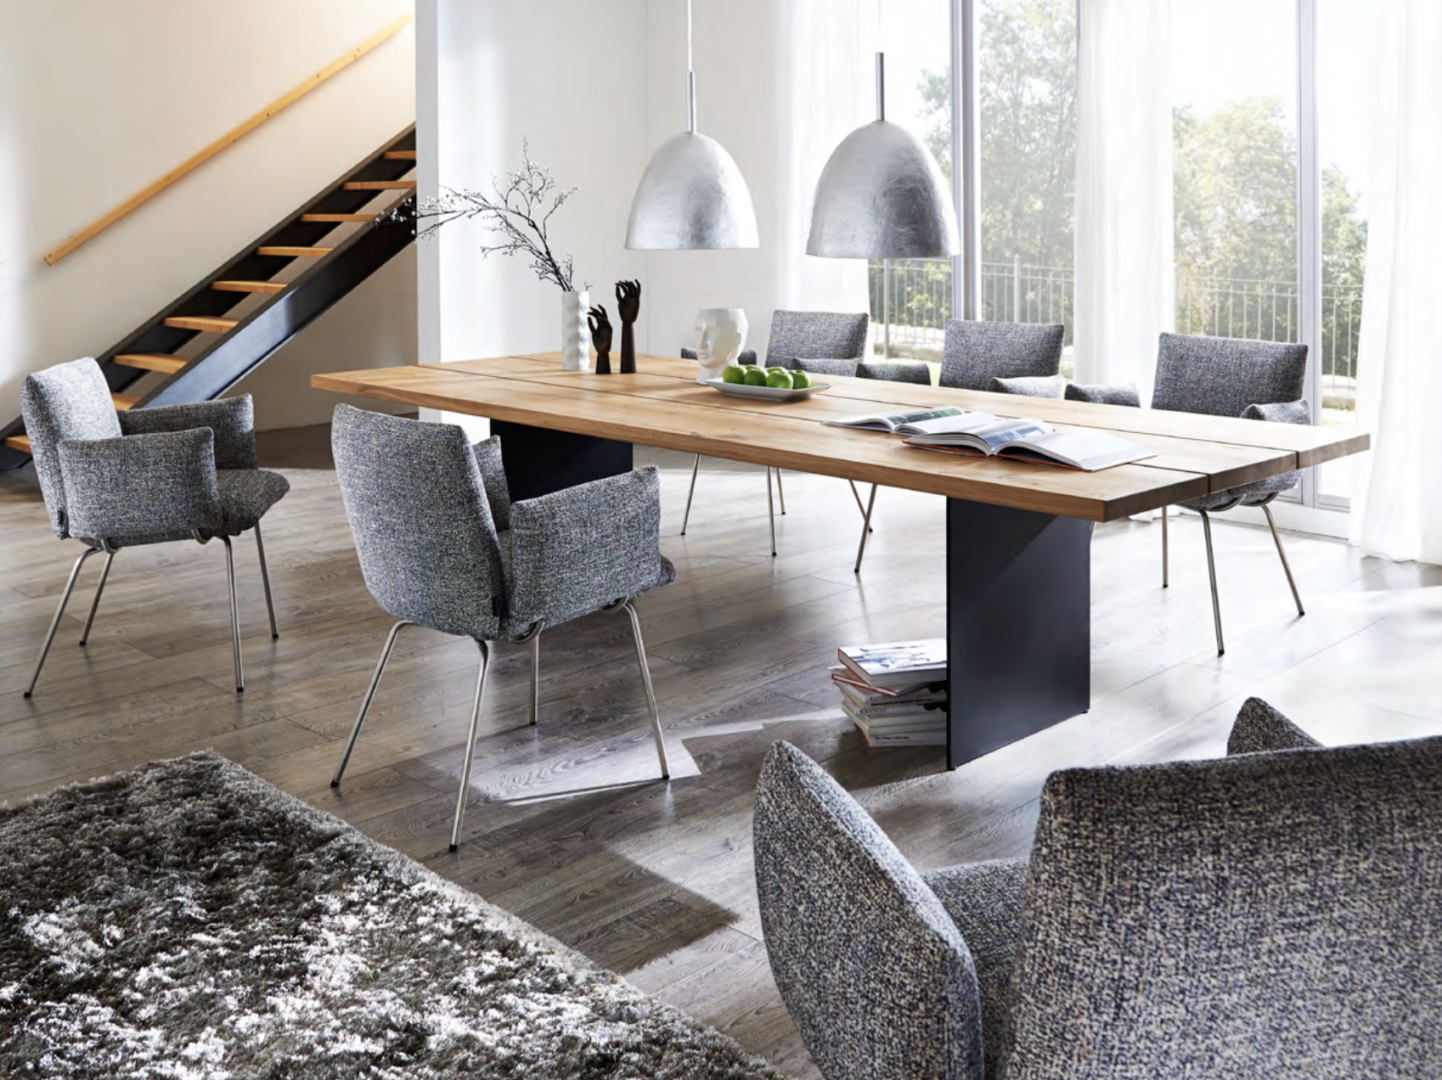 venjakob-dining-furniture-with-silver-light-shades